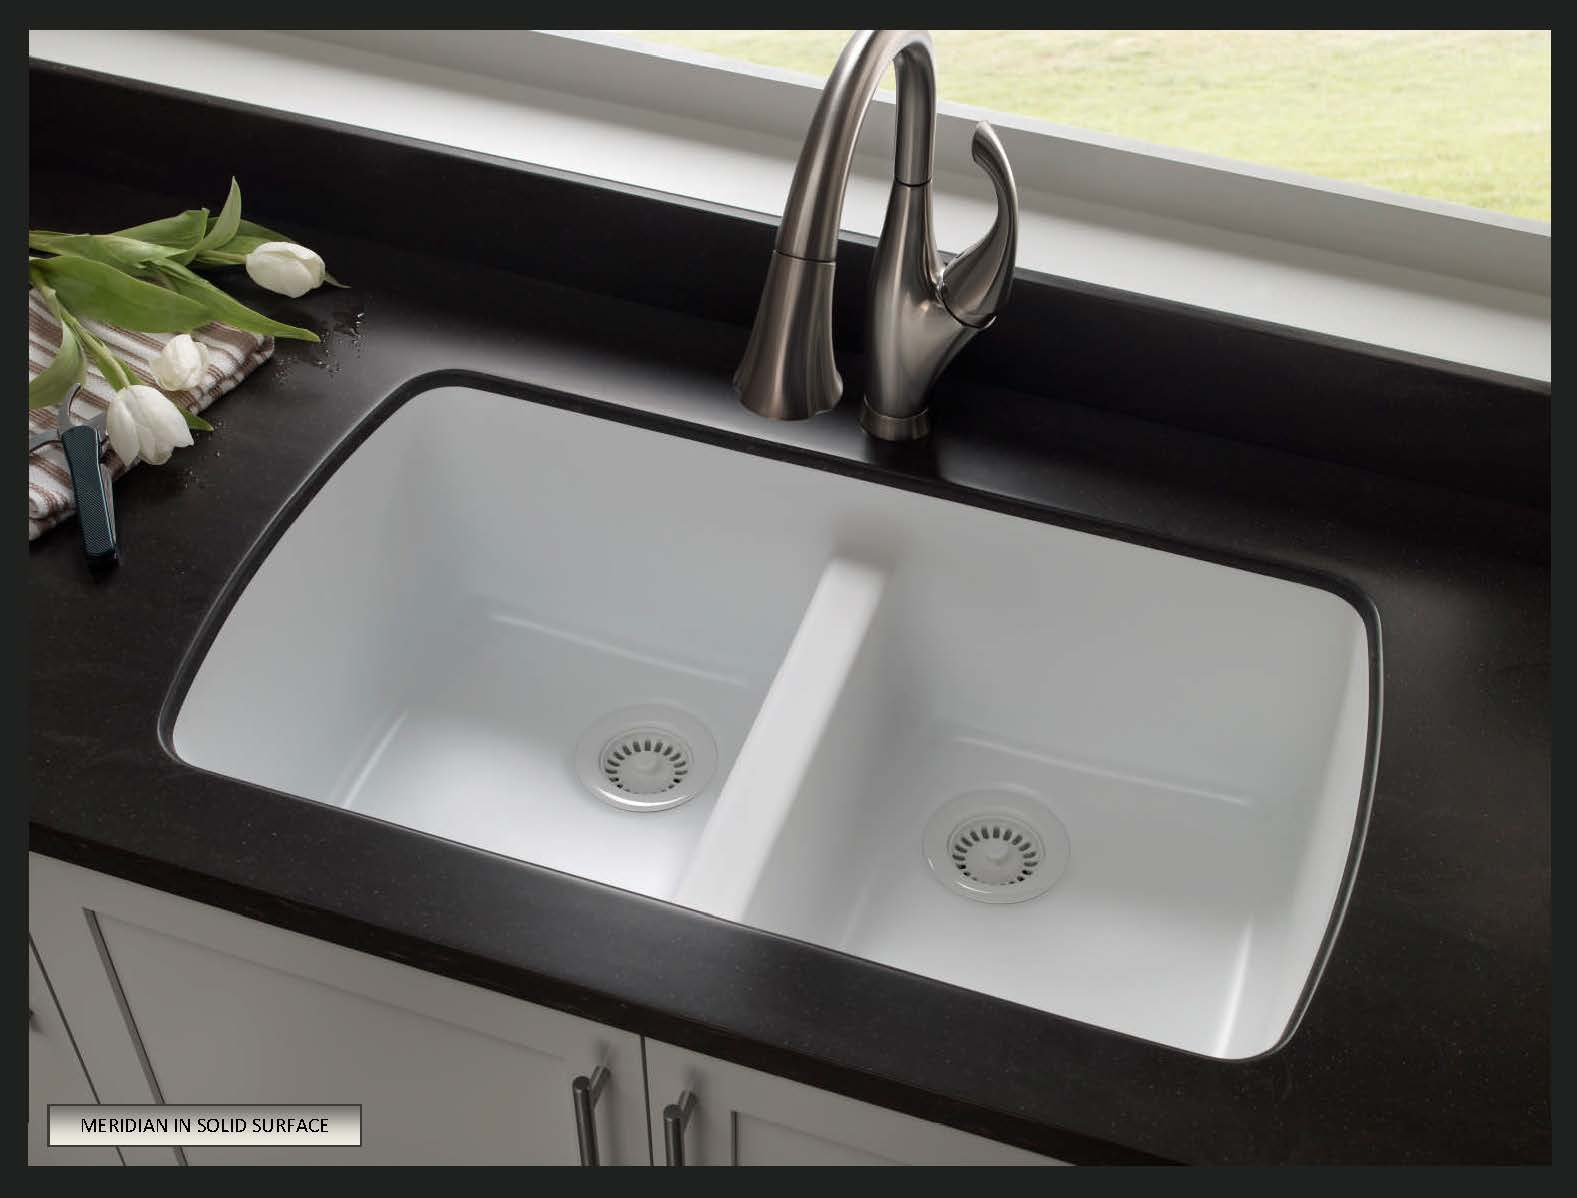 How to choose a sink for solid surface countertops Kitchen countertops quartz vs solid surface